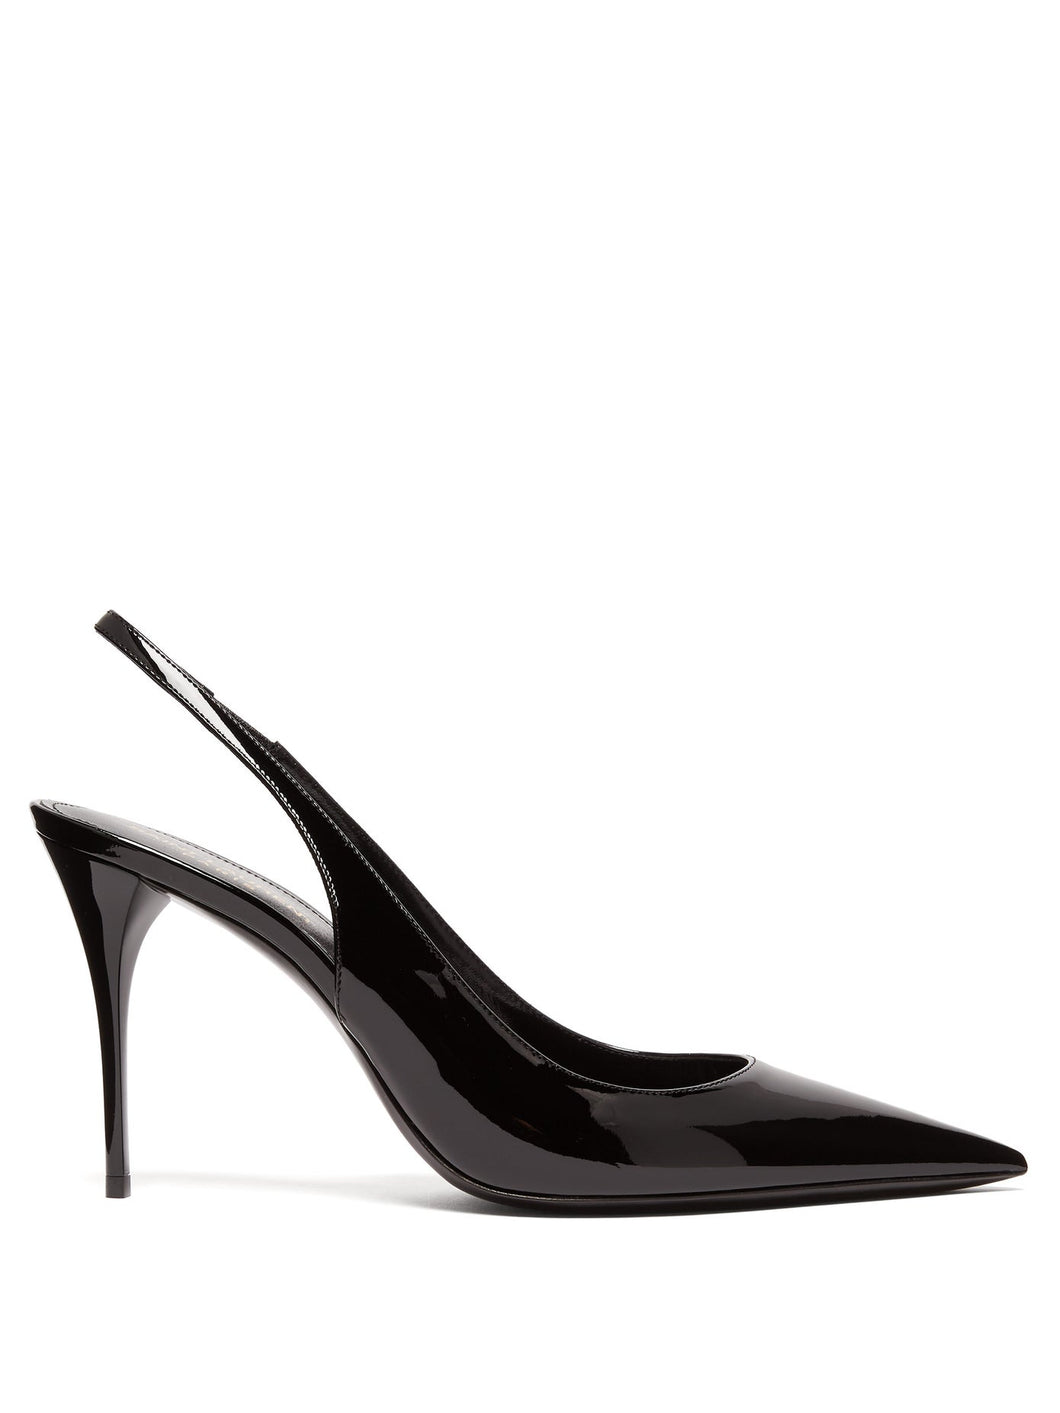 Lexi patent-leather slingback pumps